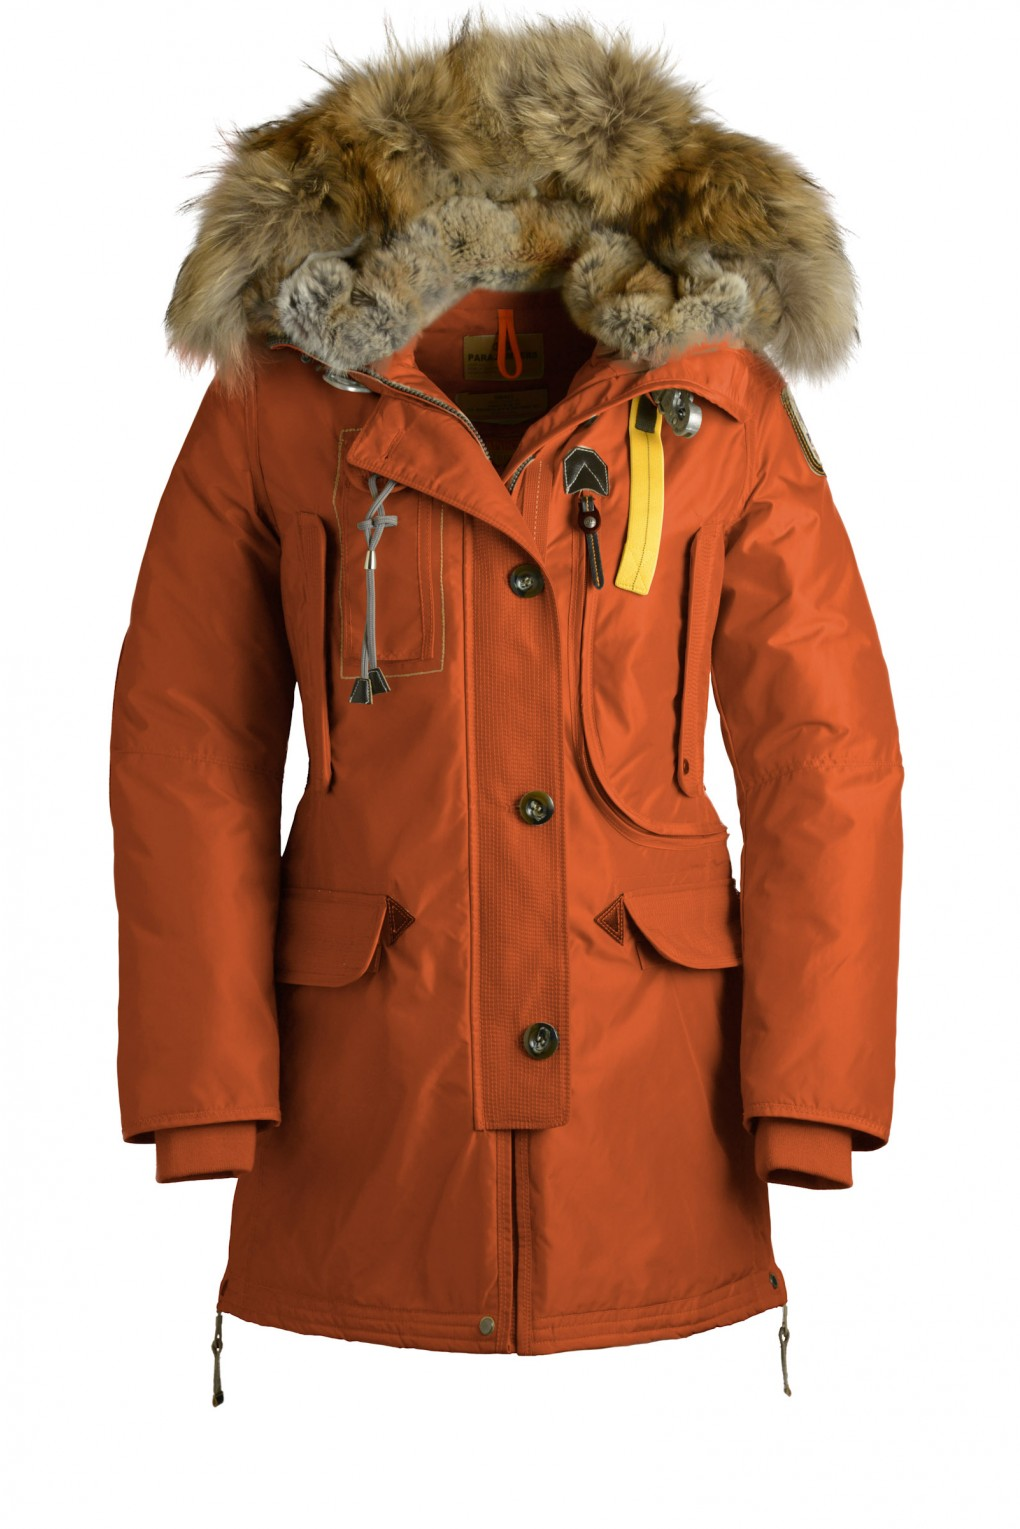 parajumpers KODIAK woman outerwear Rust